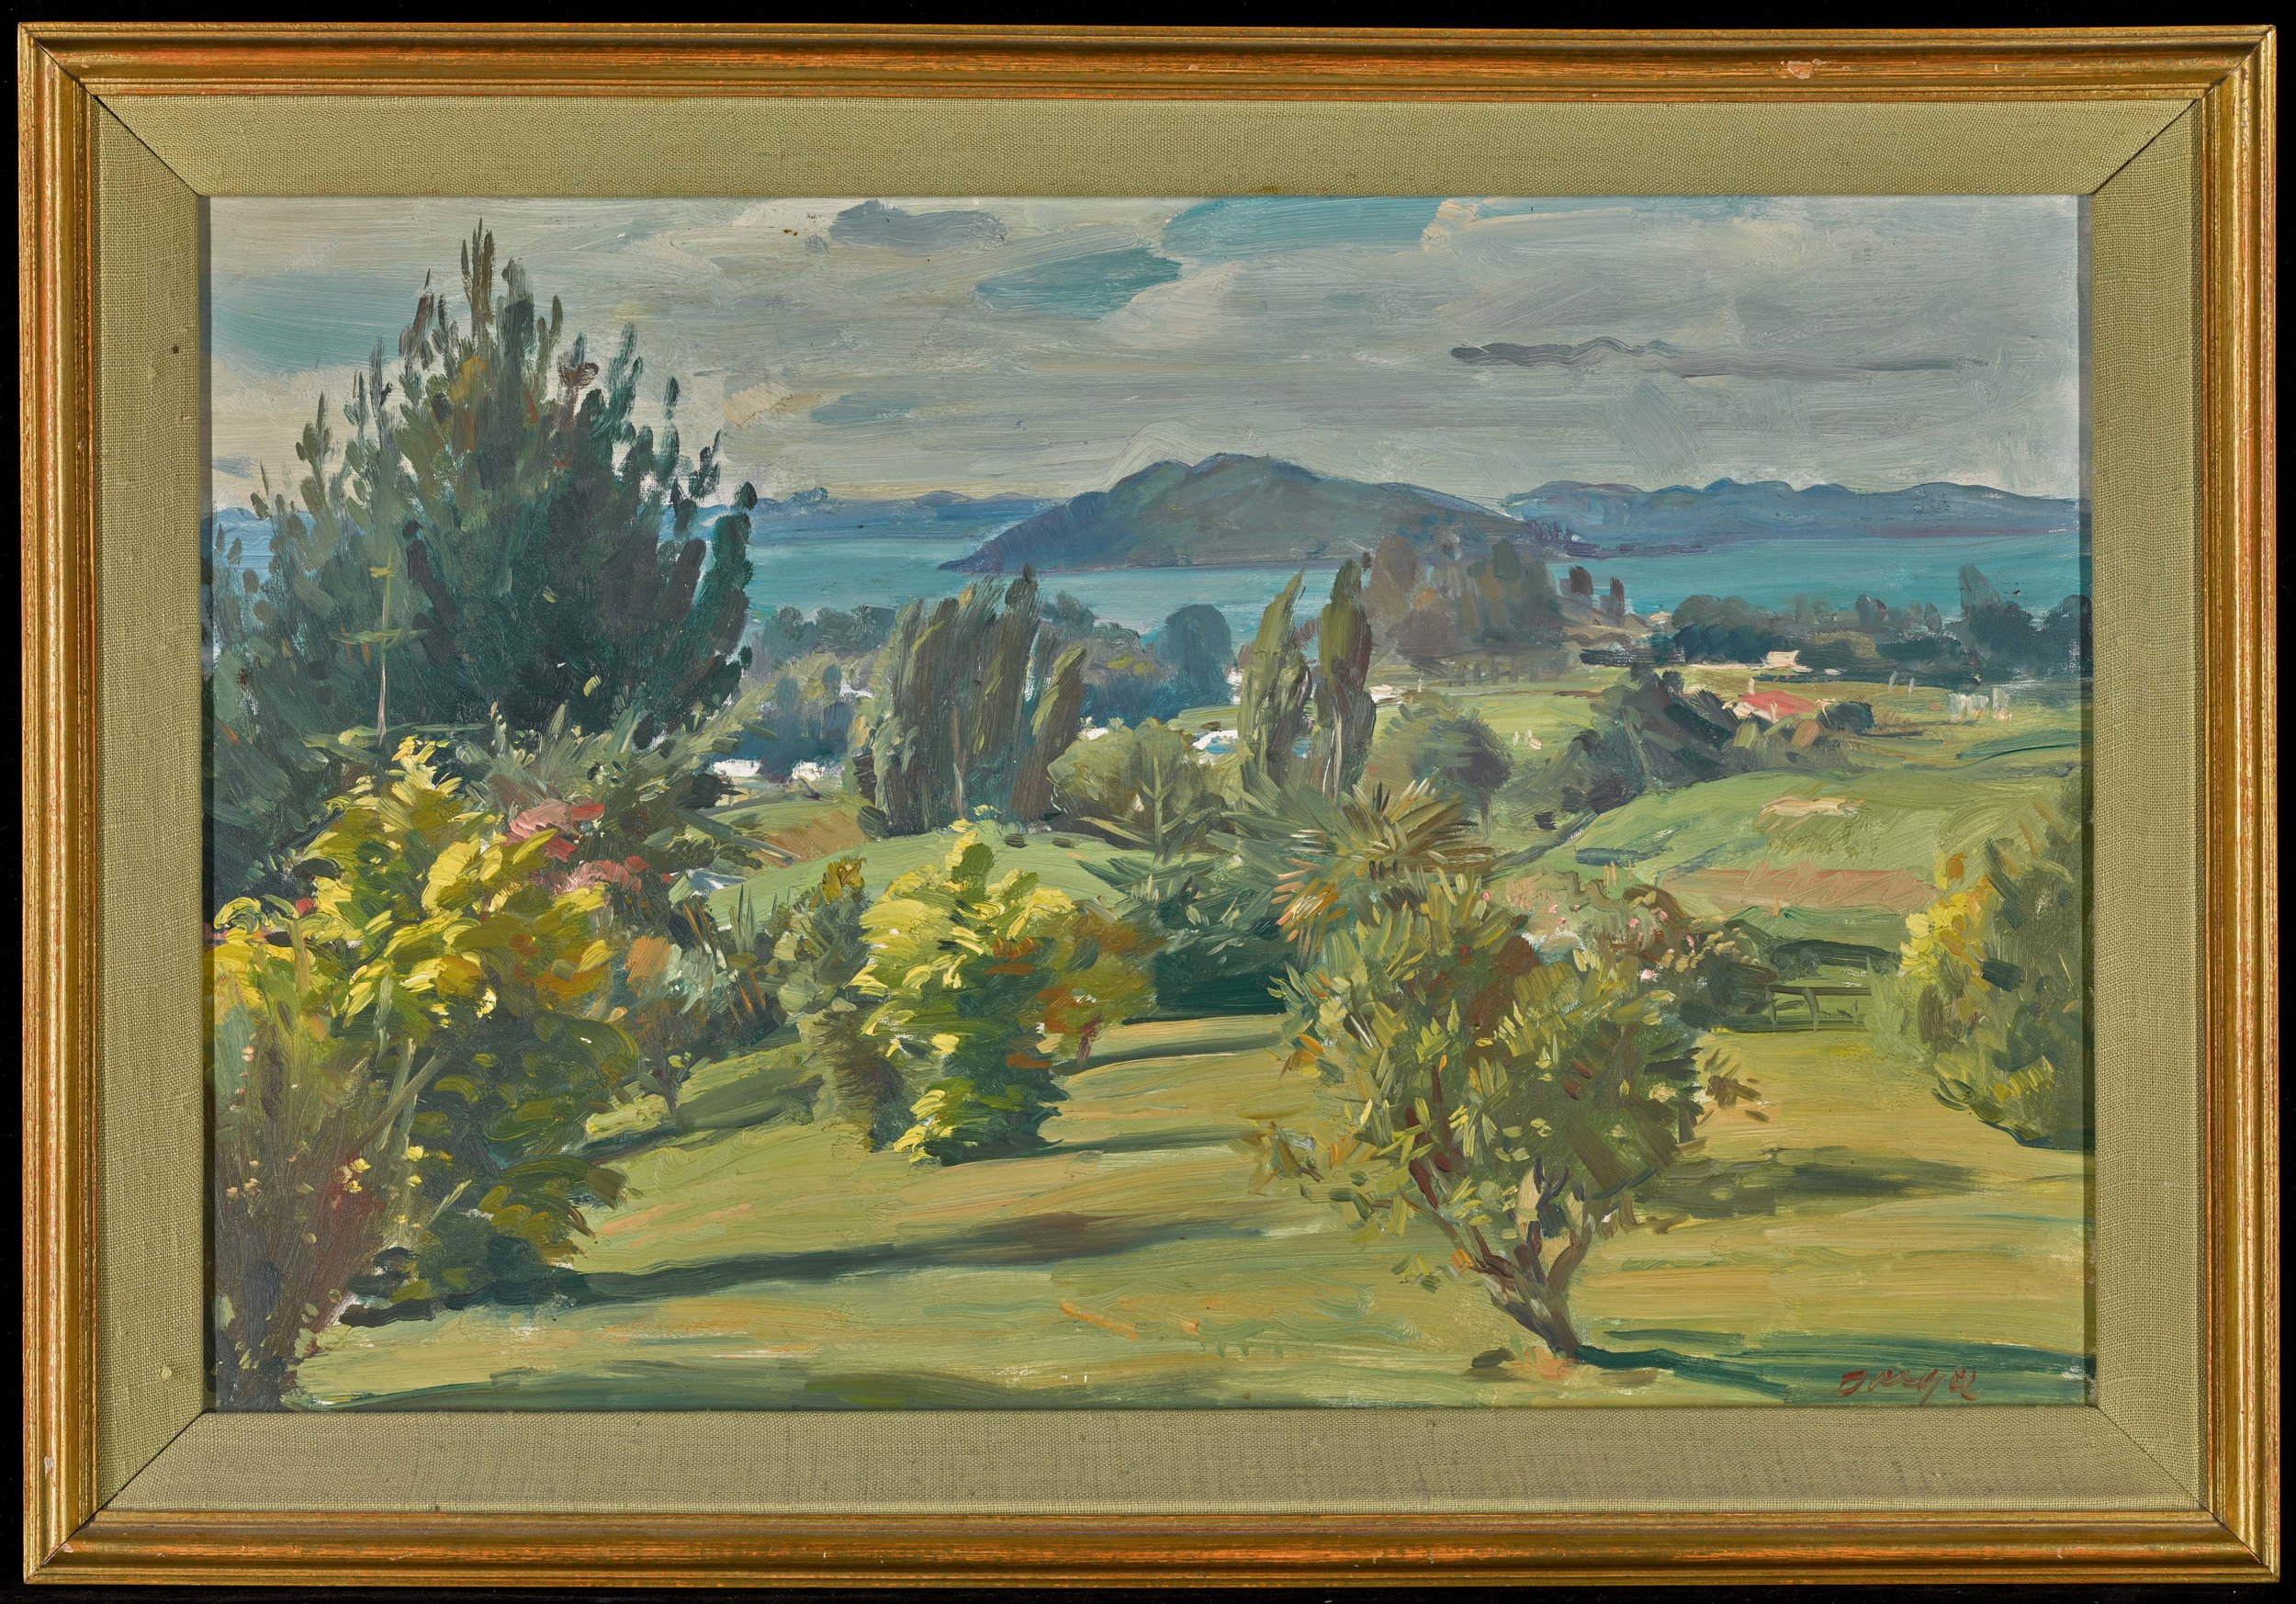 Roger Furse | 1903 - 1972 Mediterranean Landscape | Signed oil on canvas board | 31.5 by 49cm; 12½ by 19¼ in